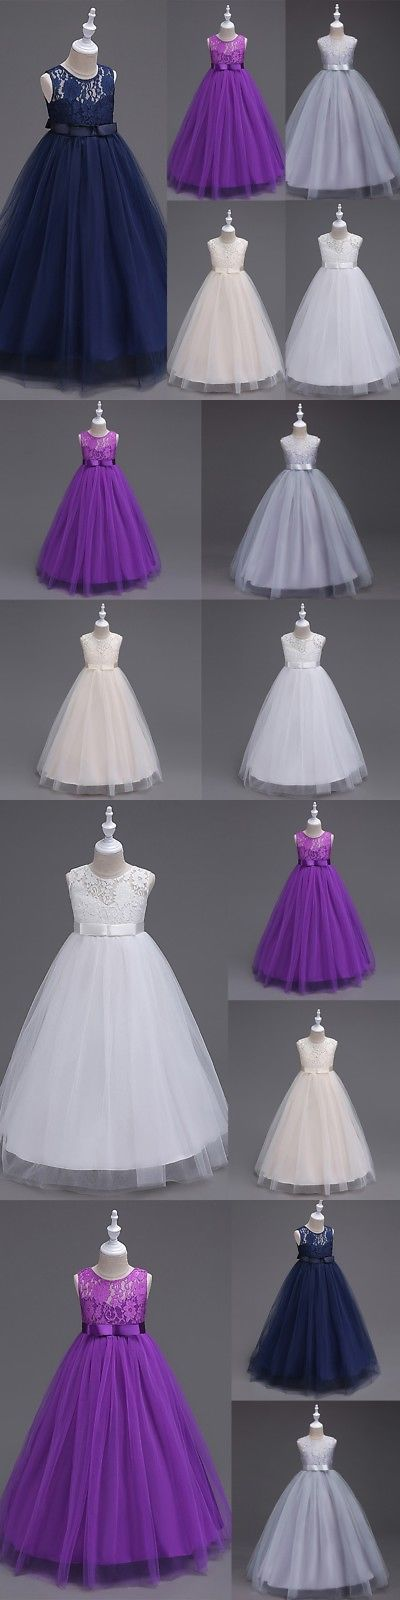 a461cdb5f Girls Formal Occasion 3263  Lace Flower Girl Dress Maxi Long Formal ...